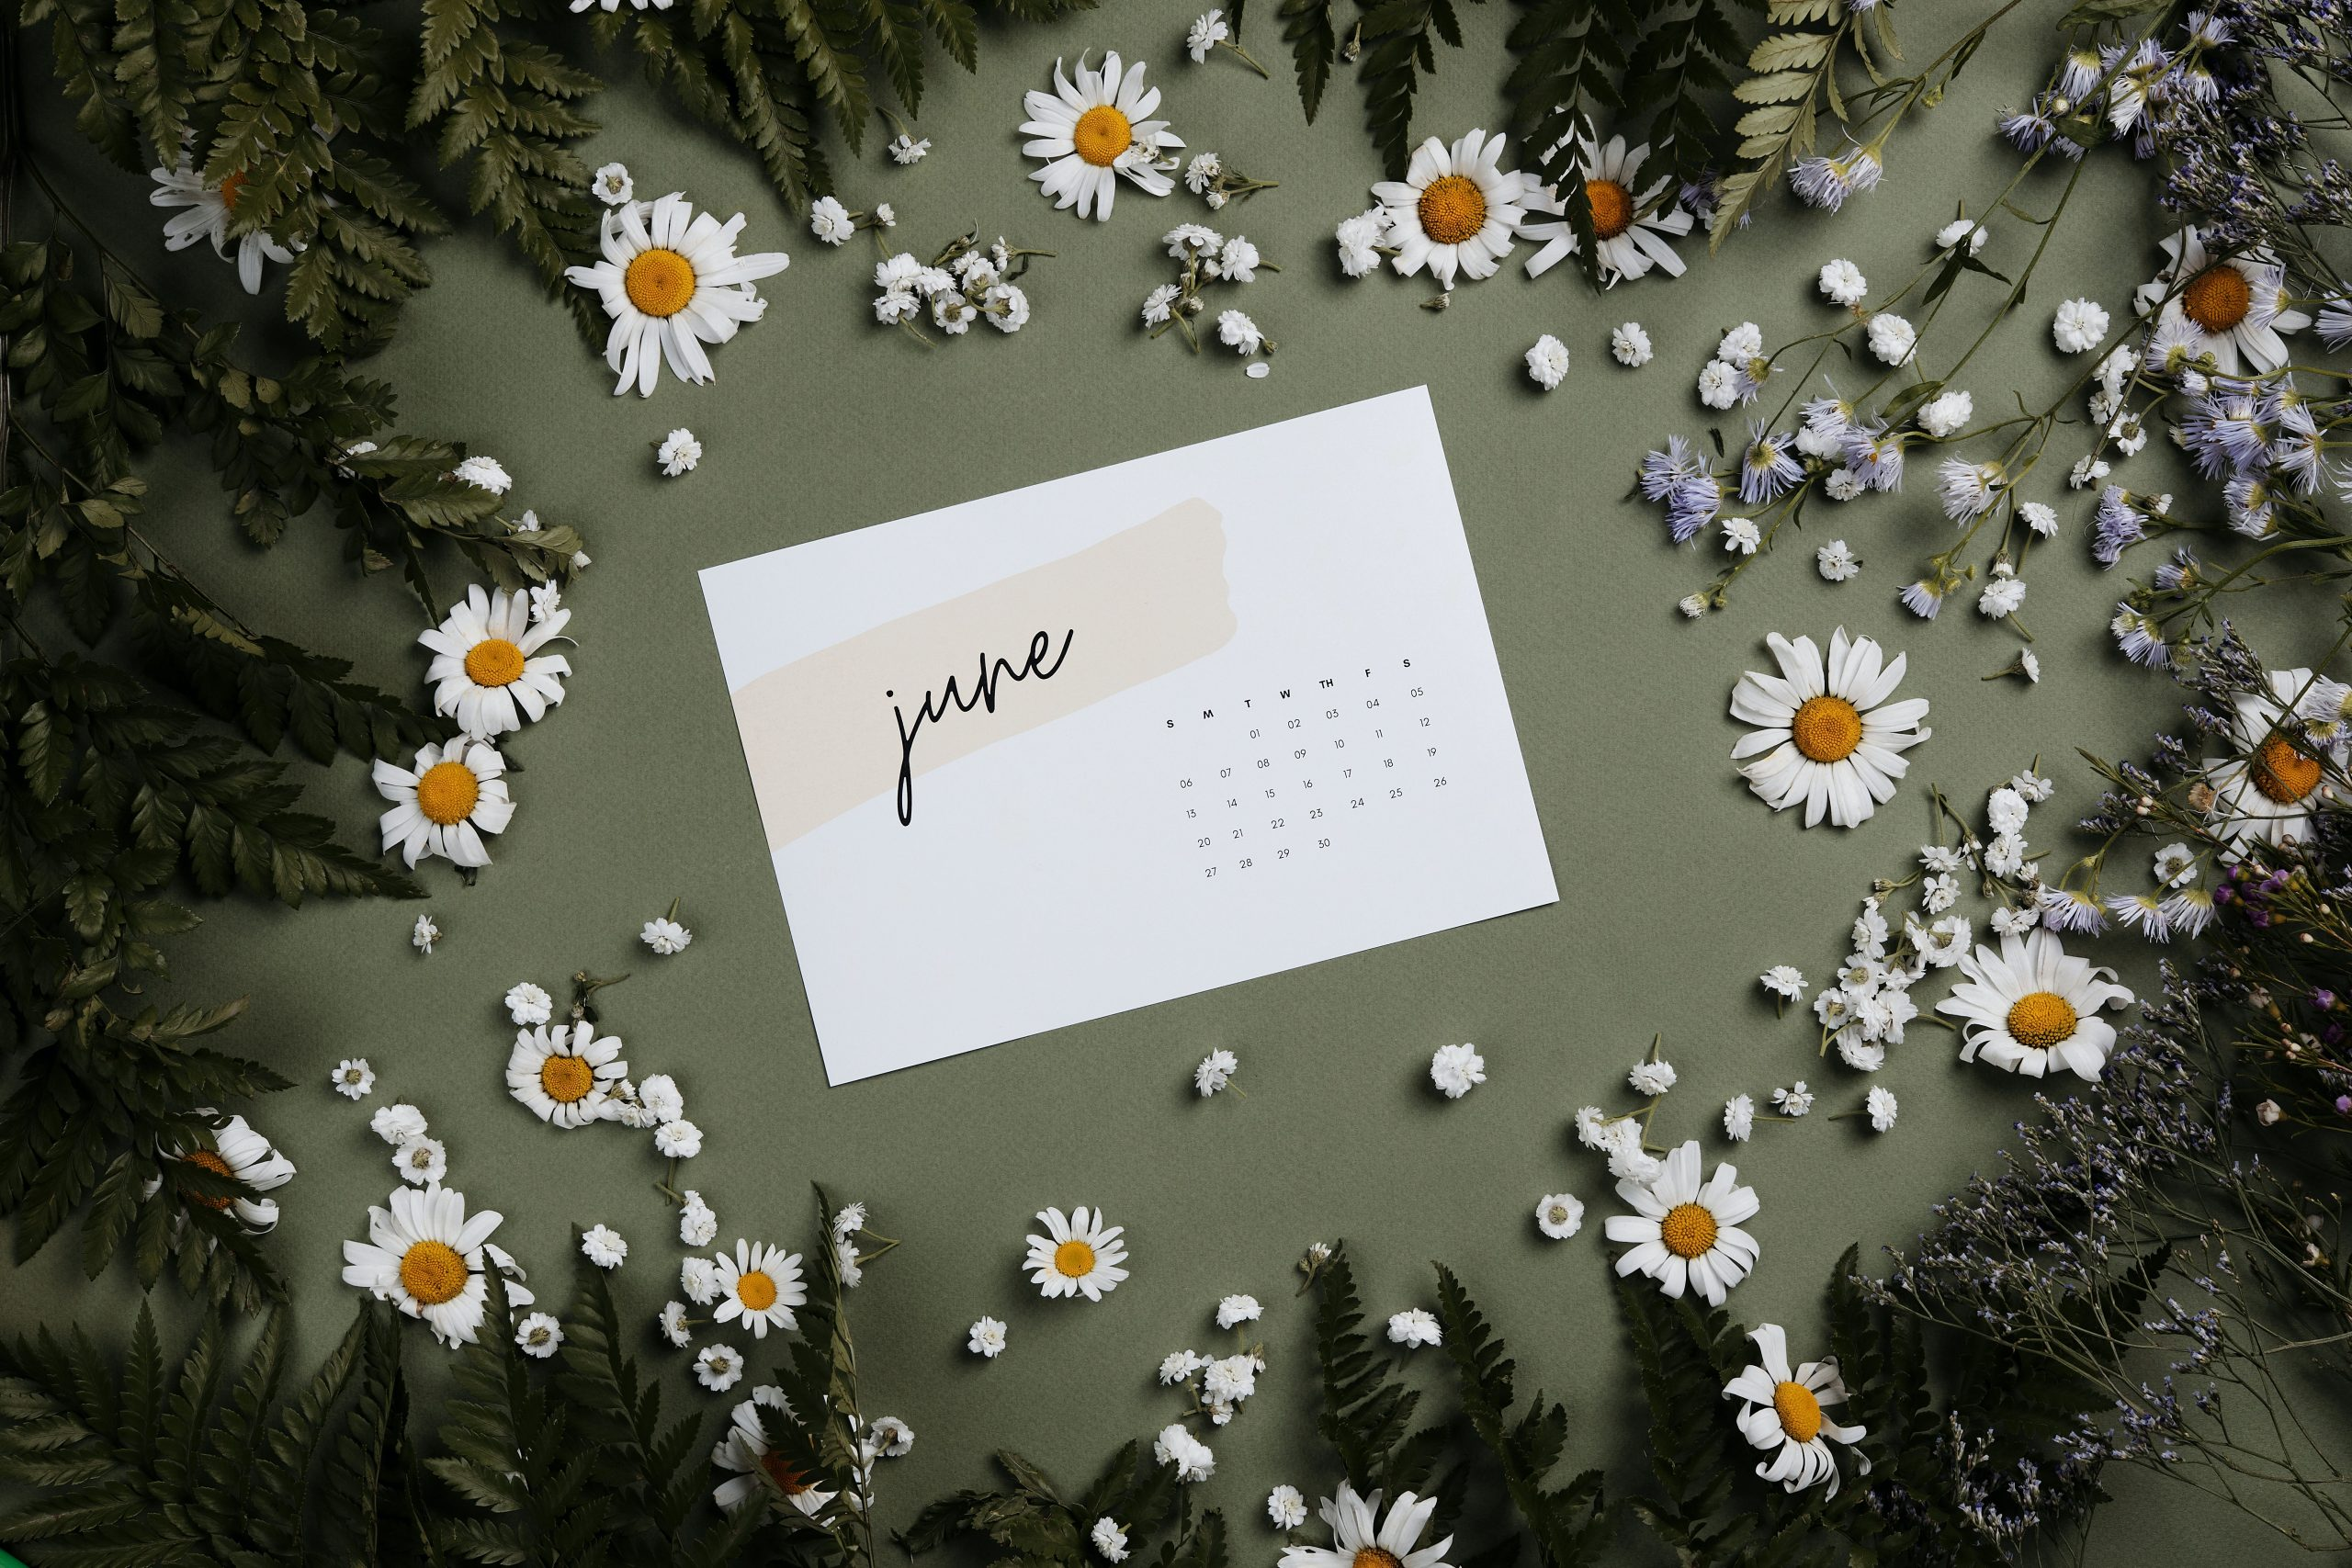 A June calendar surrounded by flowers.